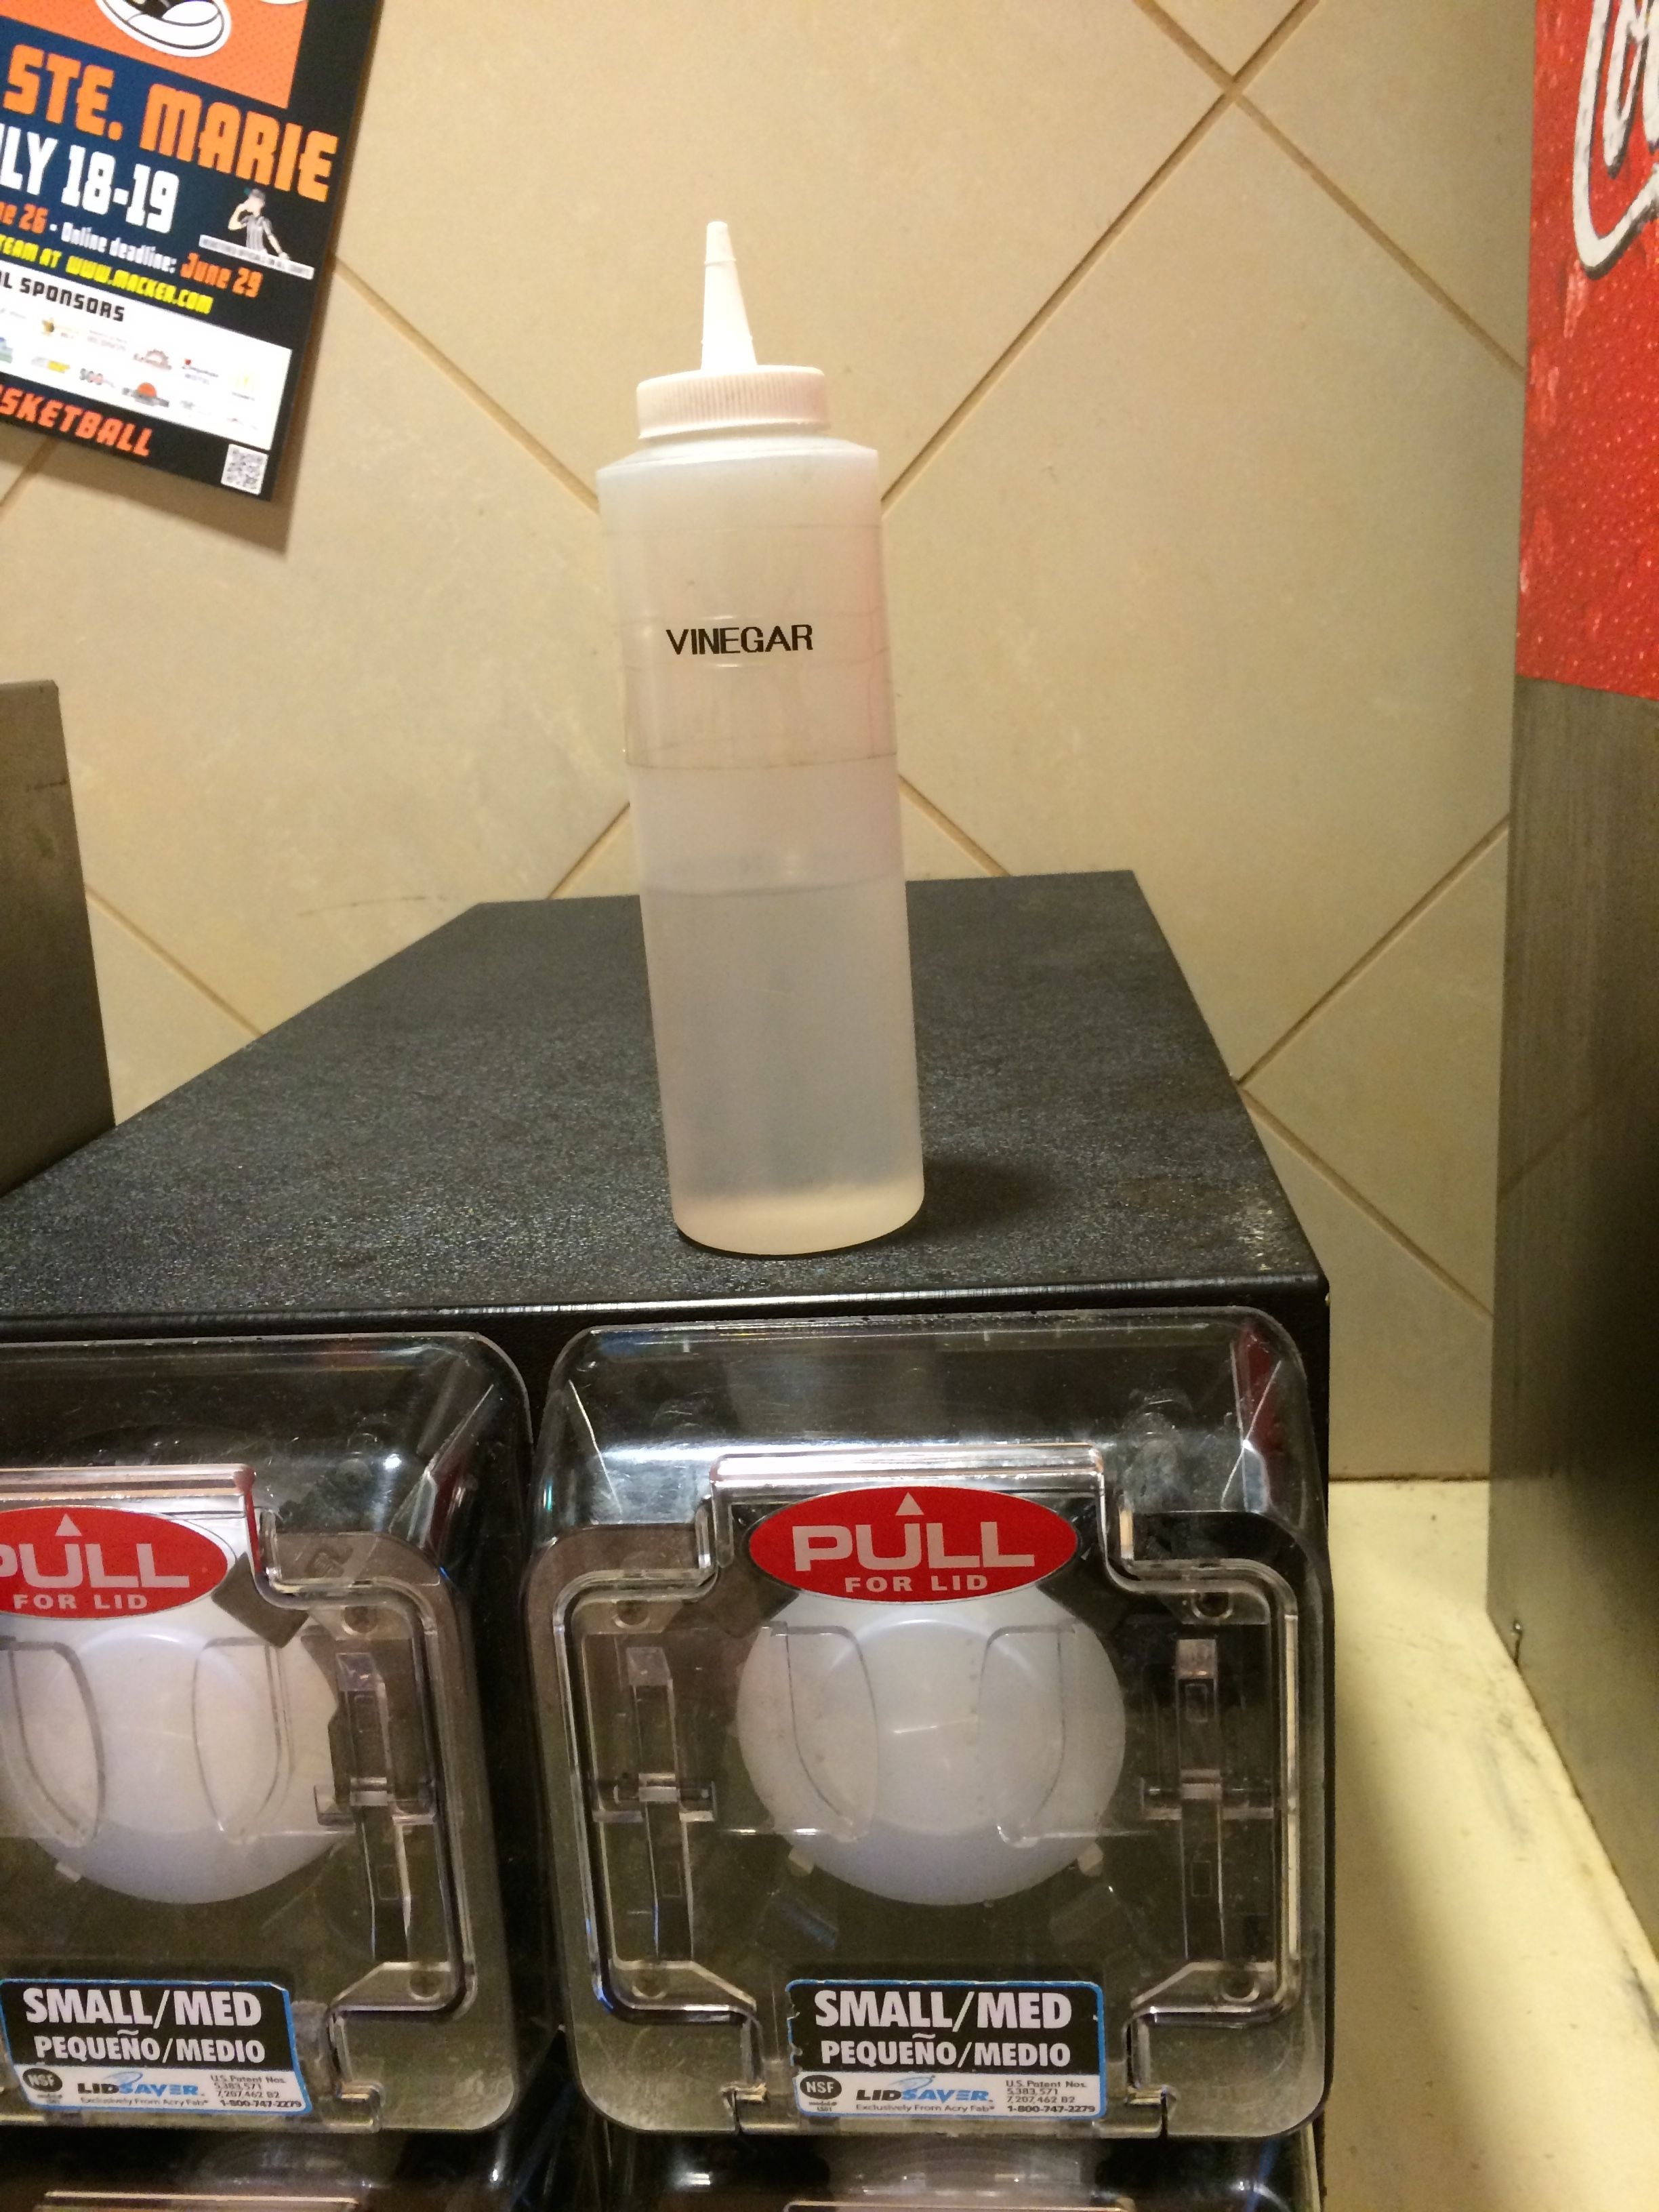 Vinegar for the french fries at McDonald's, eh?